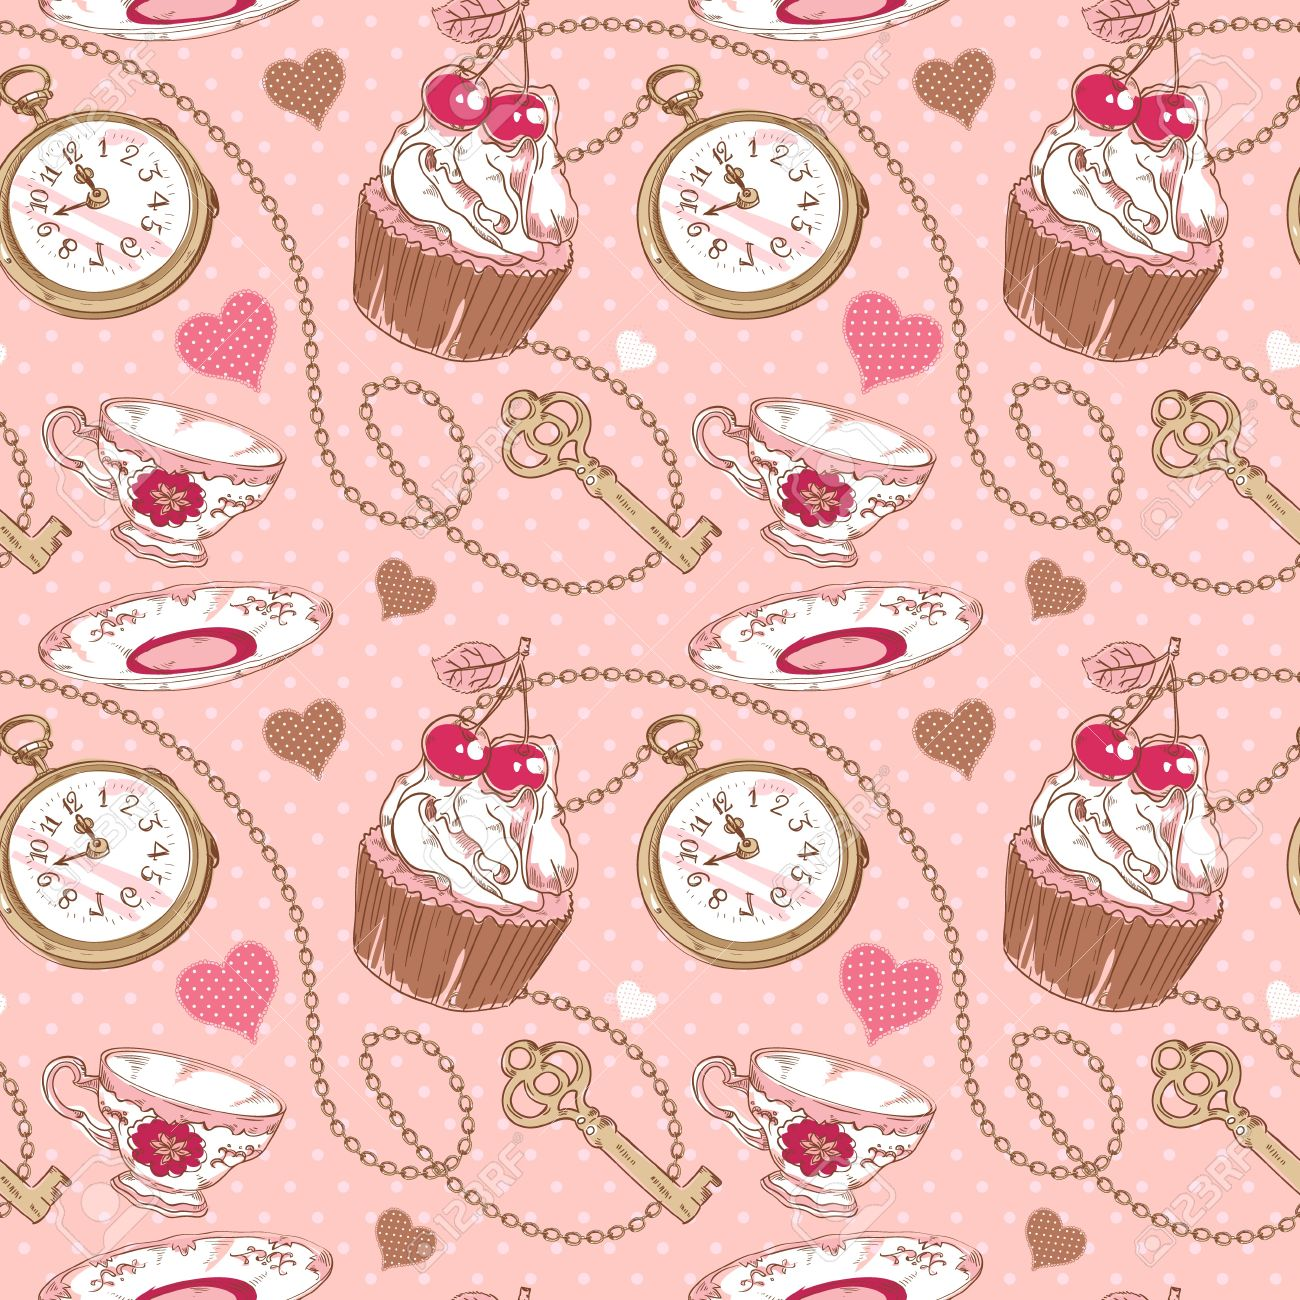 Romantic Love Vintage Pattern With Hearts Cupcake Cup Of Tea Clock Key